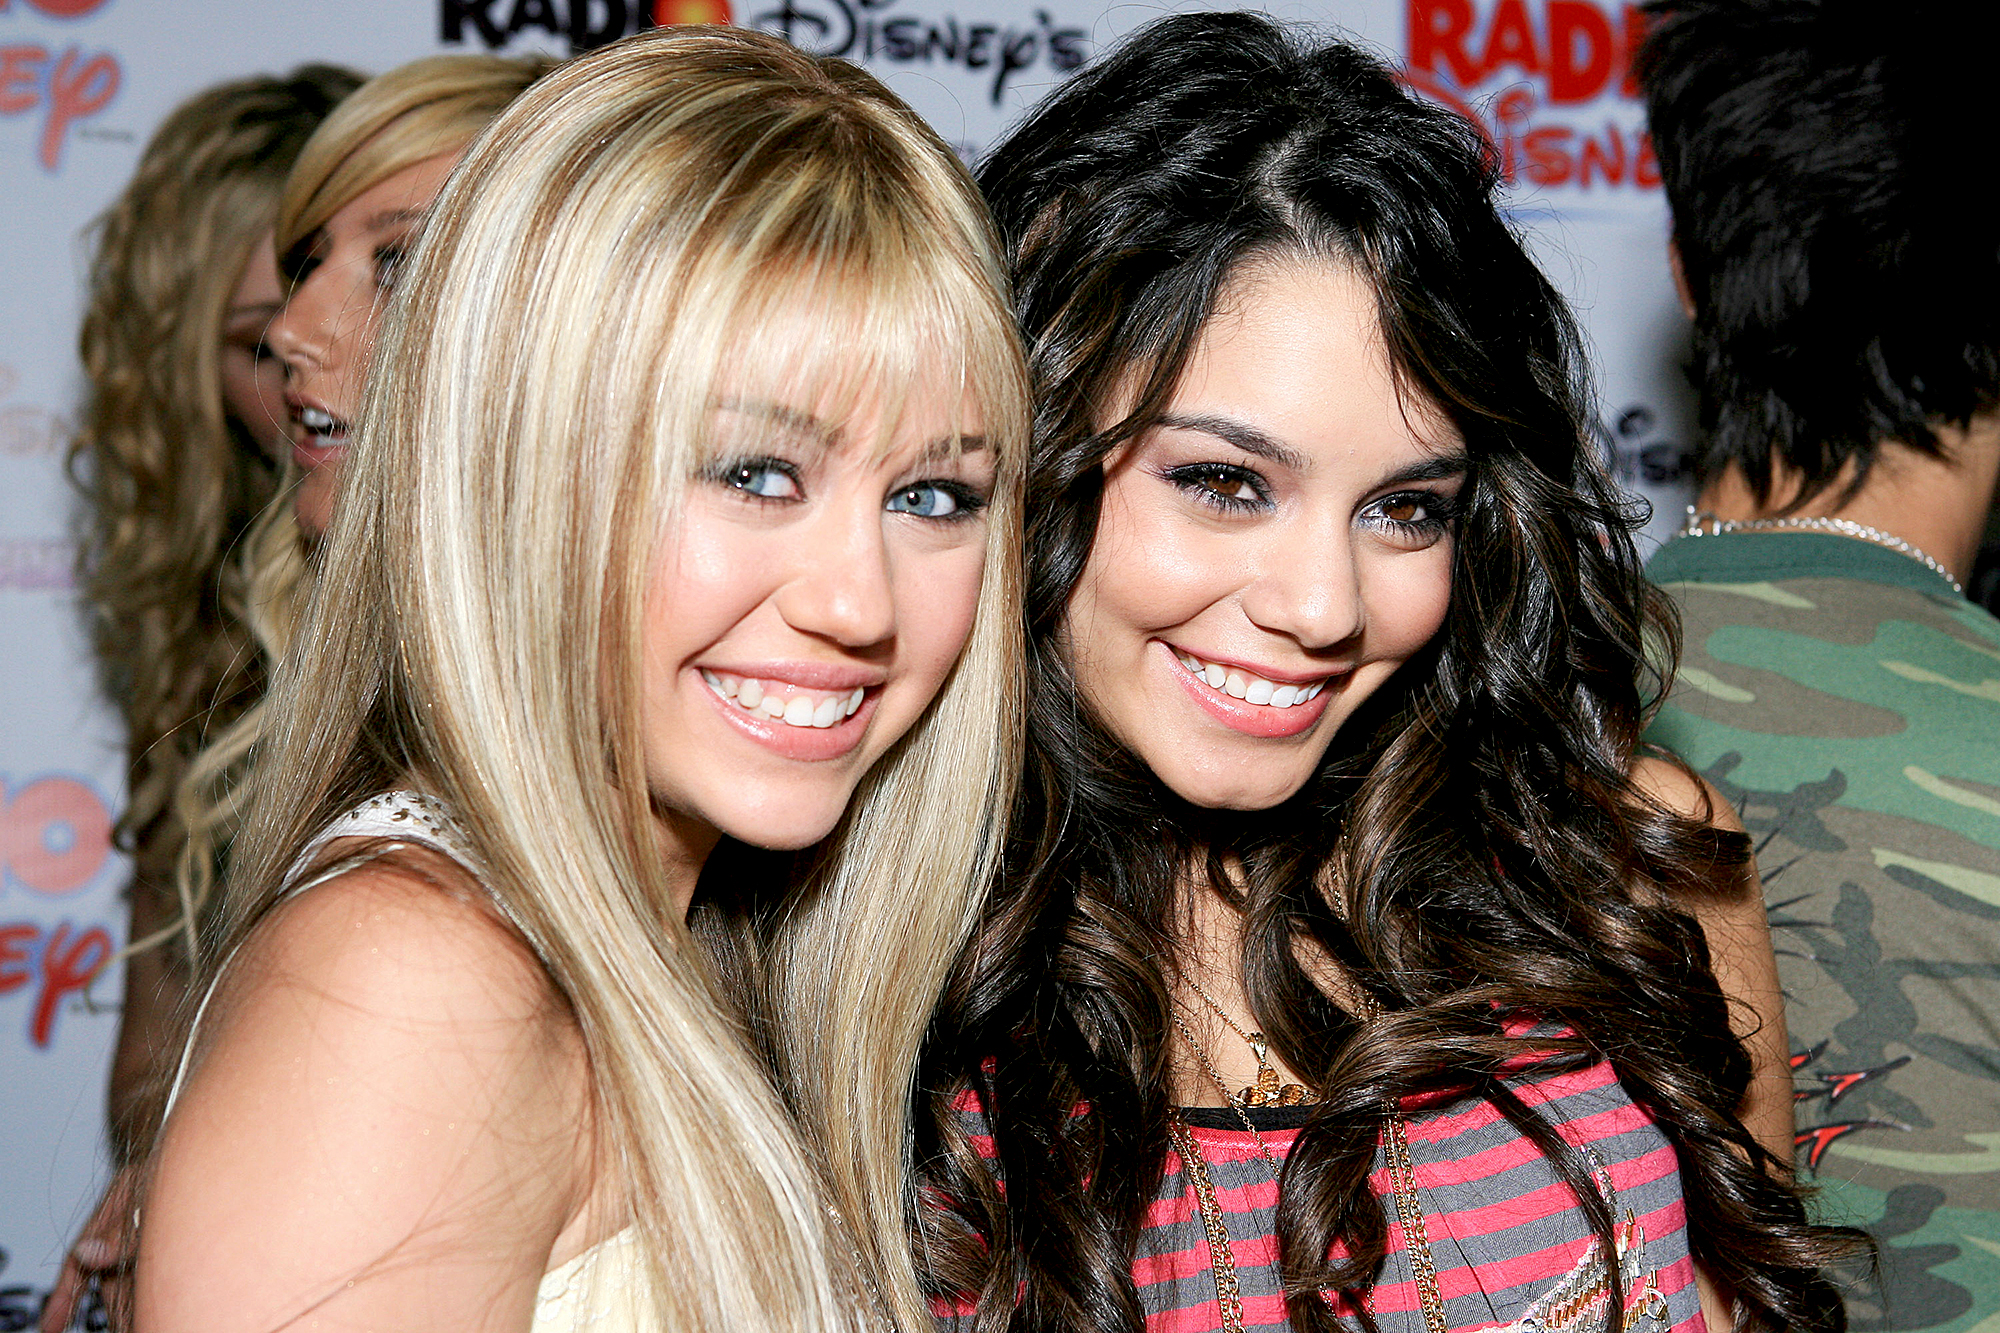 miley-cyrus-vanessa-hudgens - The former High School Musical star sidled up to Cyrus in a sweet throwback.